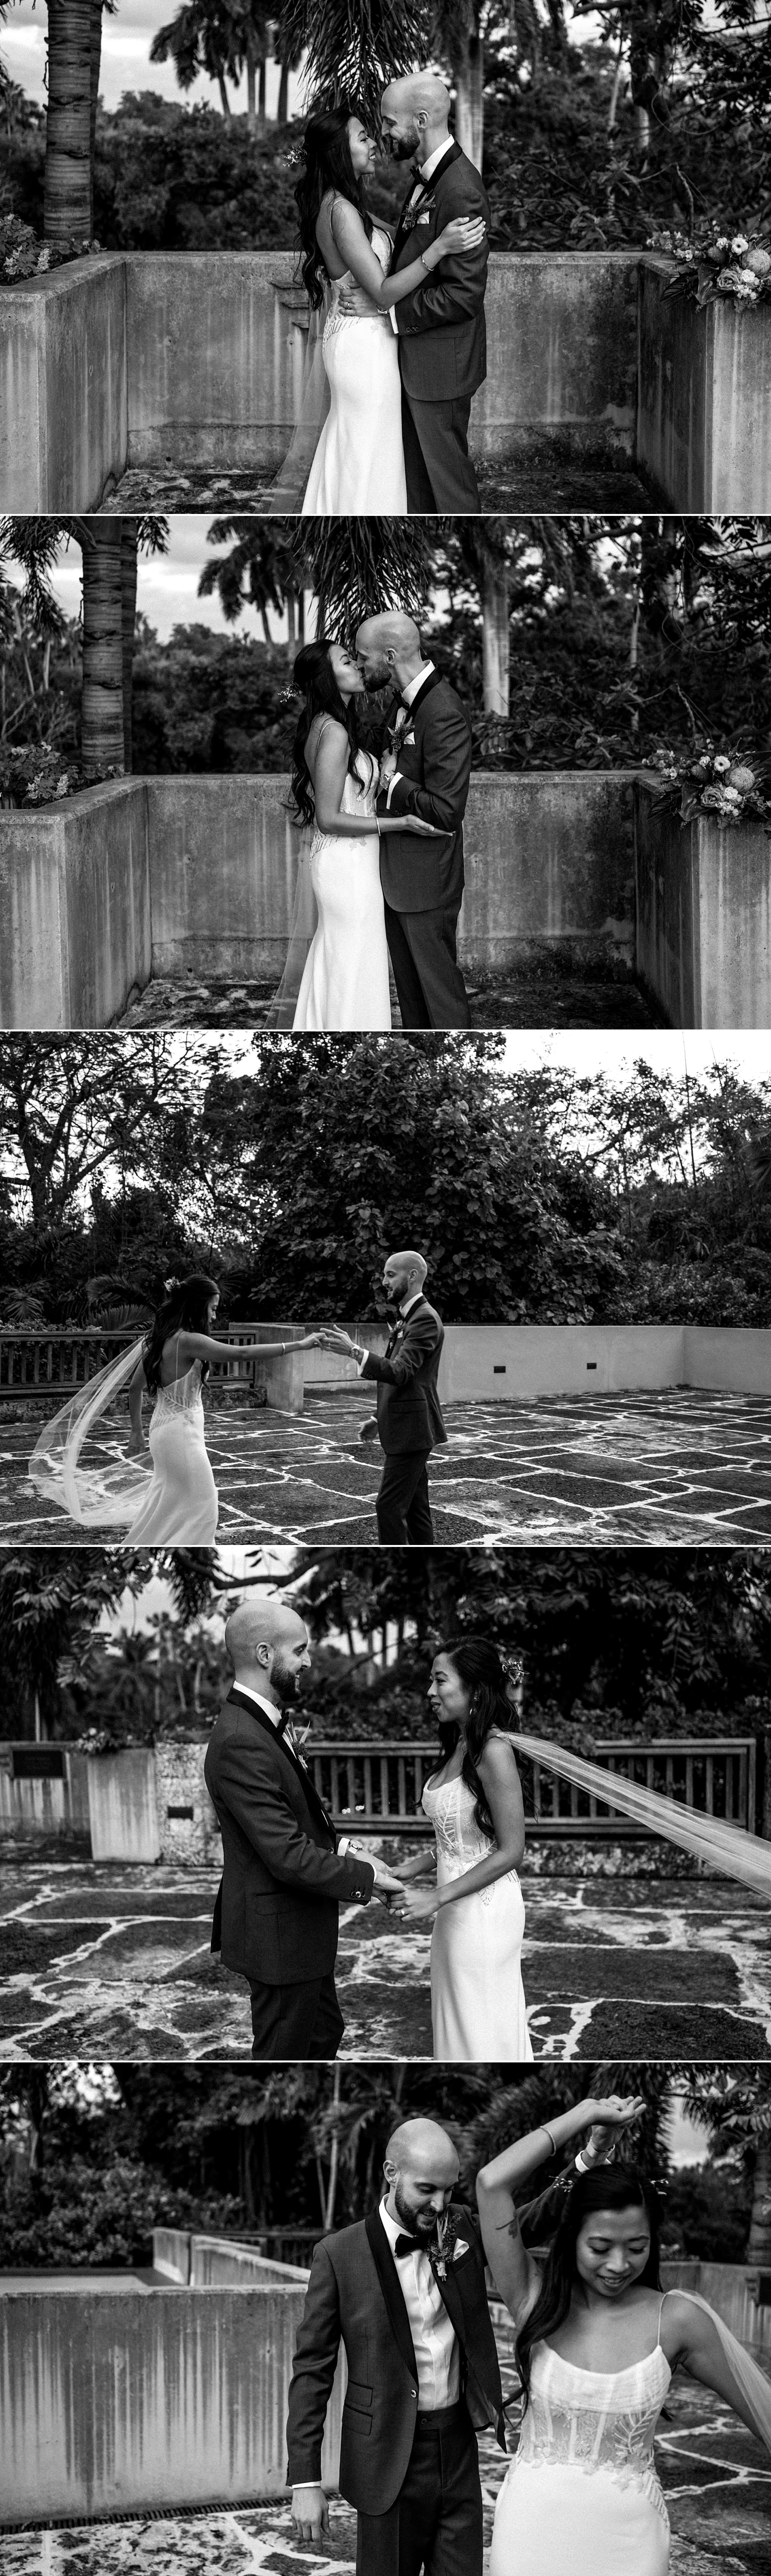 natural wedding photography miami the kampong 0469 1